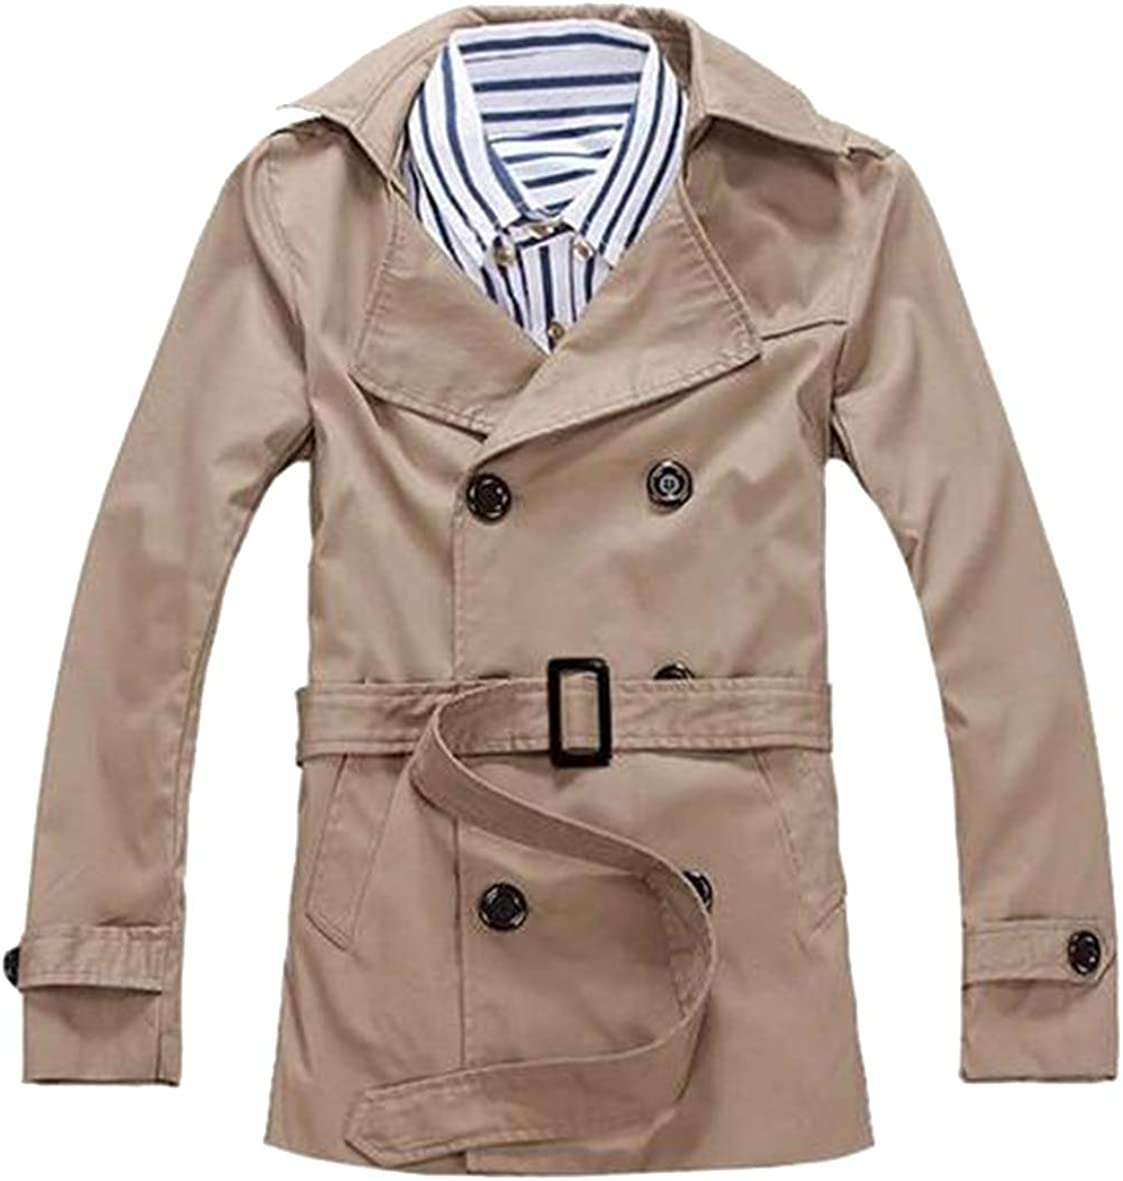 FSSE Mens Regular Fit Cotton Casual Solid Color Double Breasted Trench Coat Jacket